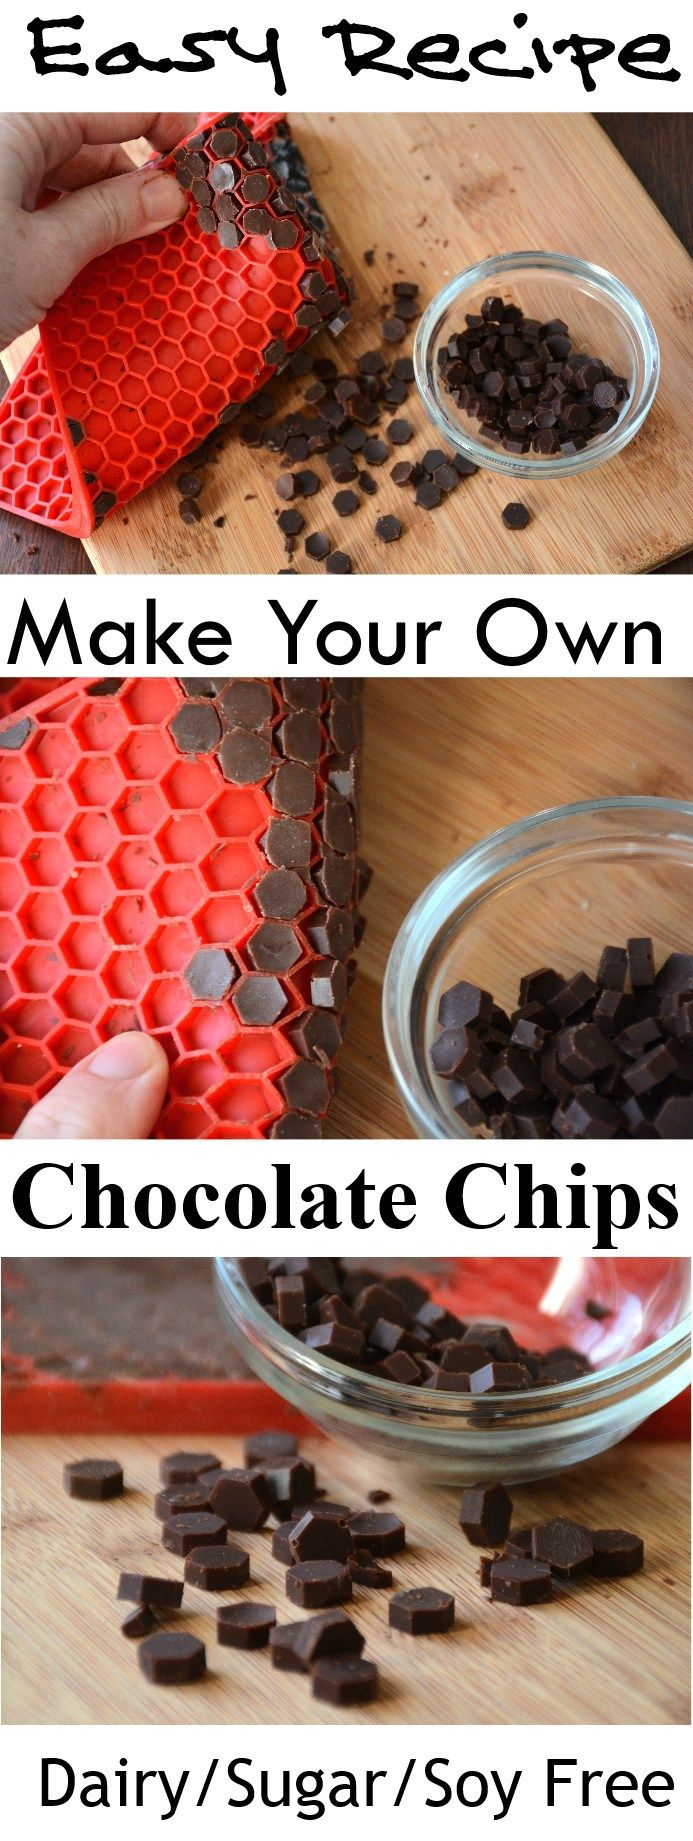 Make Your Own Chocolate Chips - Vegan- Paleo - Sugar Free - Also a great idea to use silicone trivet as a mold!